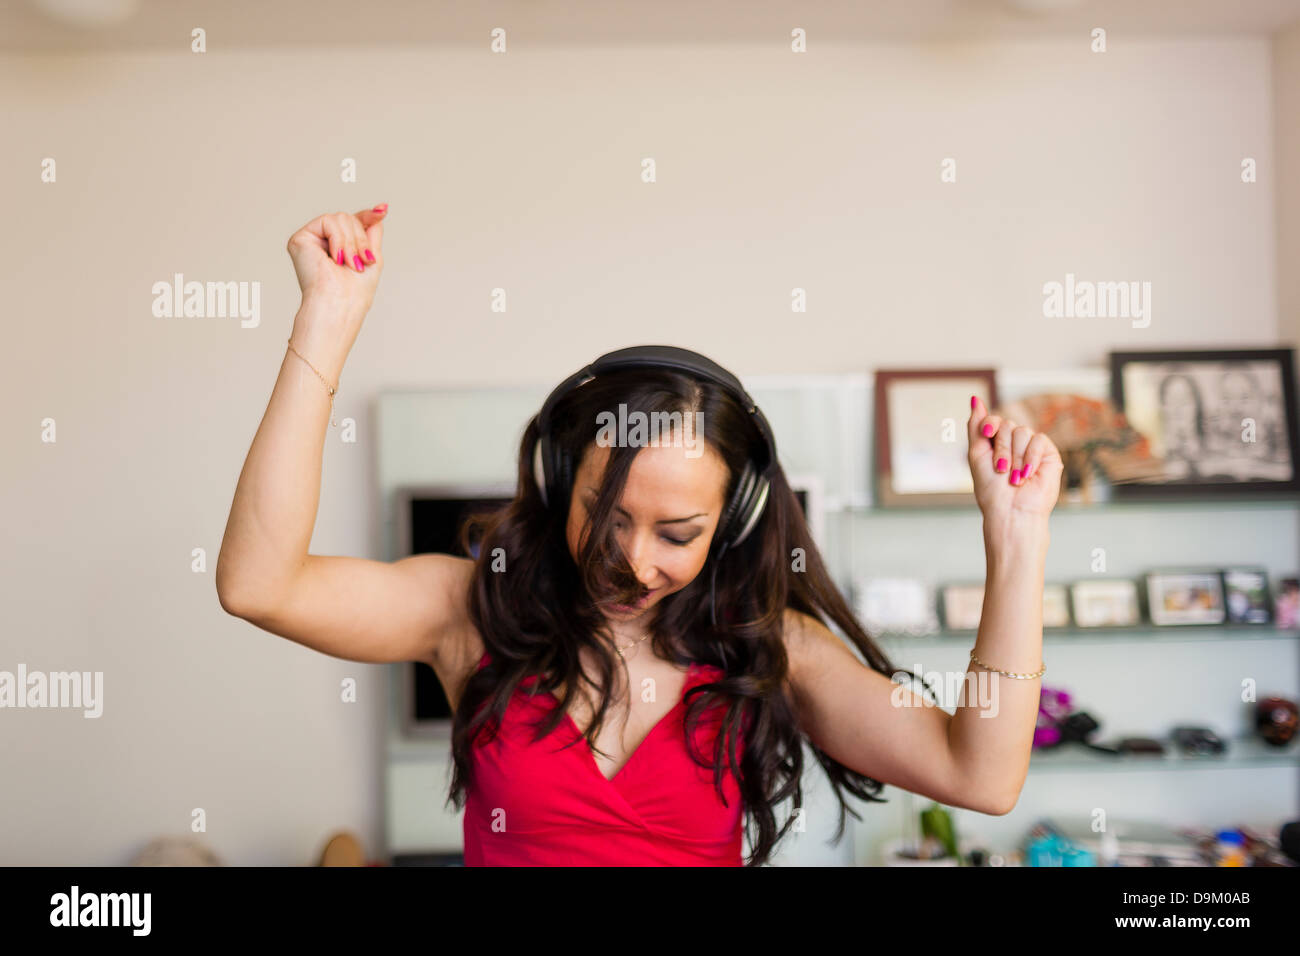 Mid adult woman wearing headphones and dancing - Stock Image